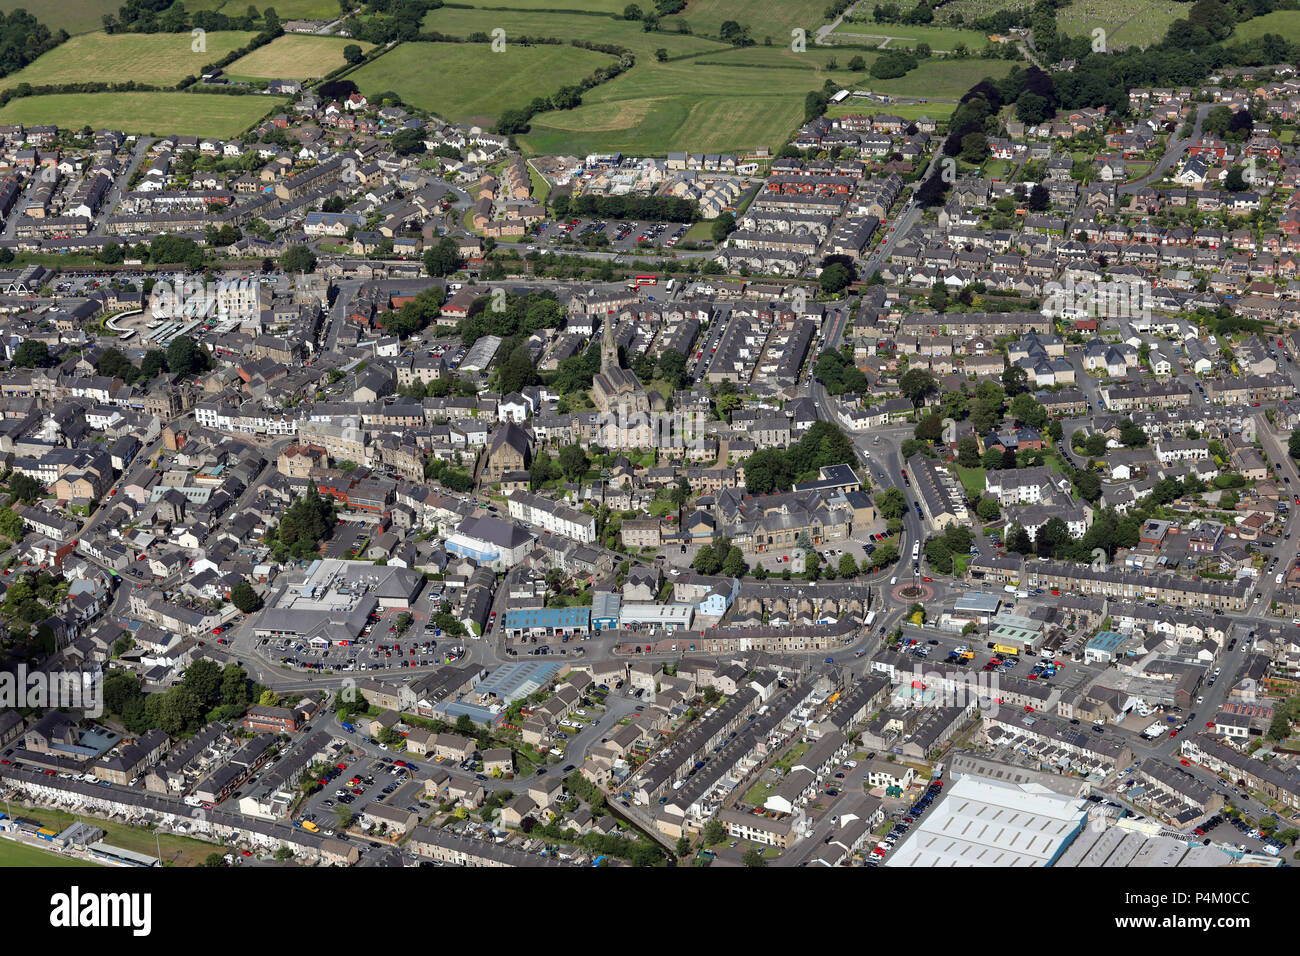 aerial view of Clitheroe town centre, Lancashire, UK - Stock Image